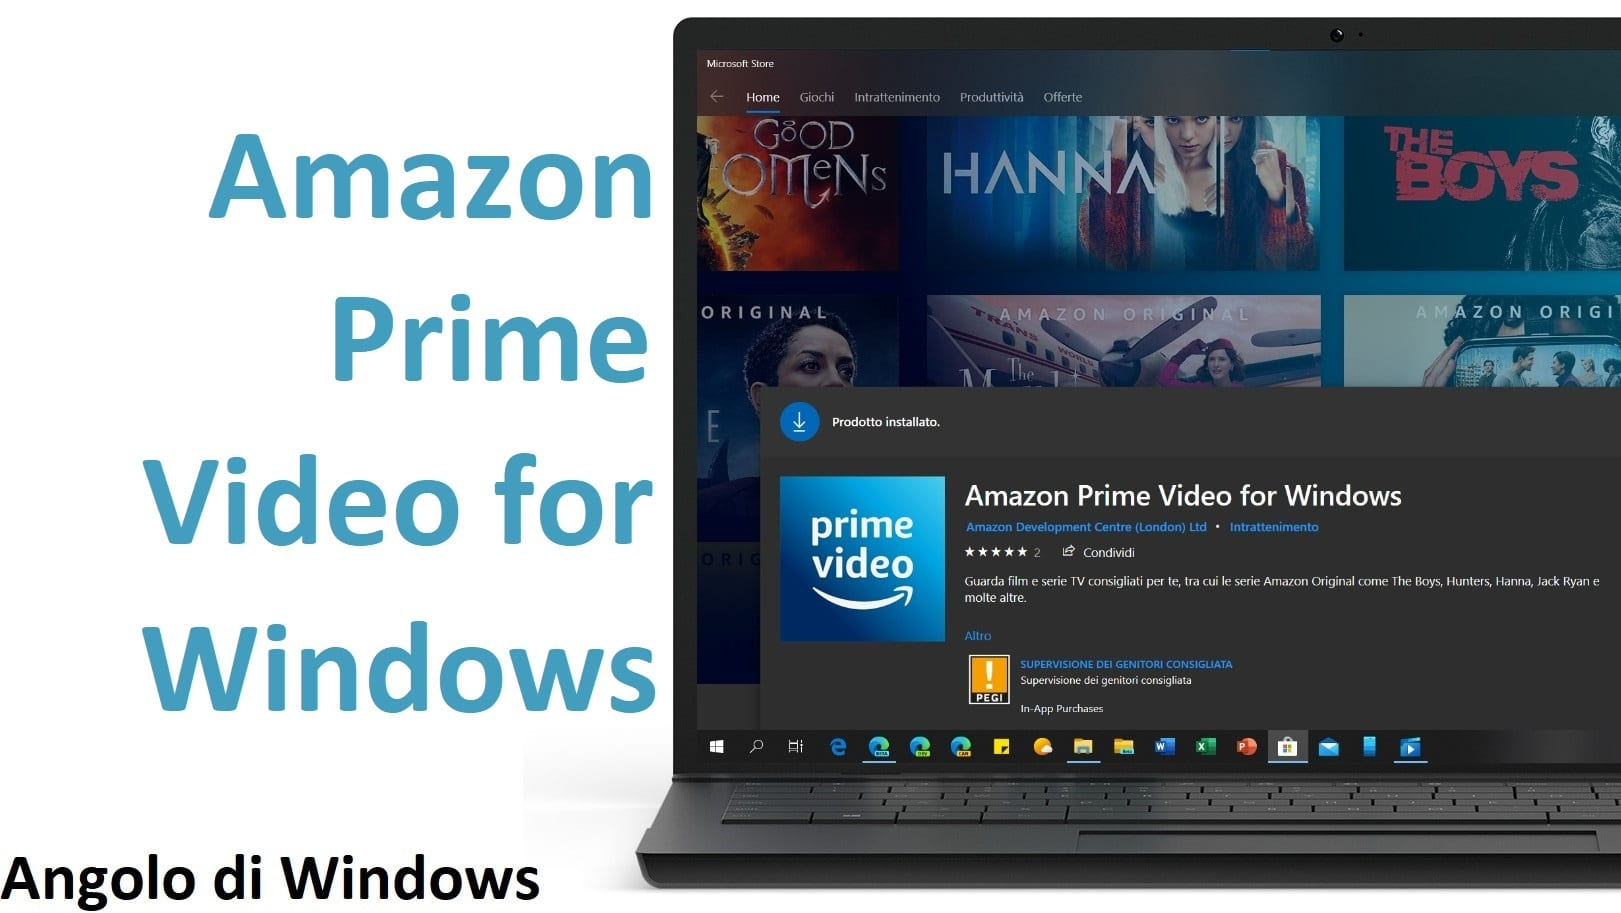 Amazon Prime Video for Windows 10